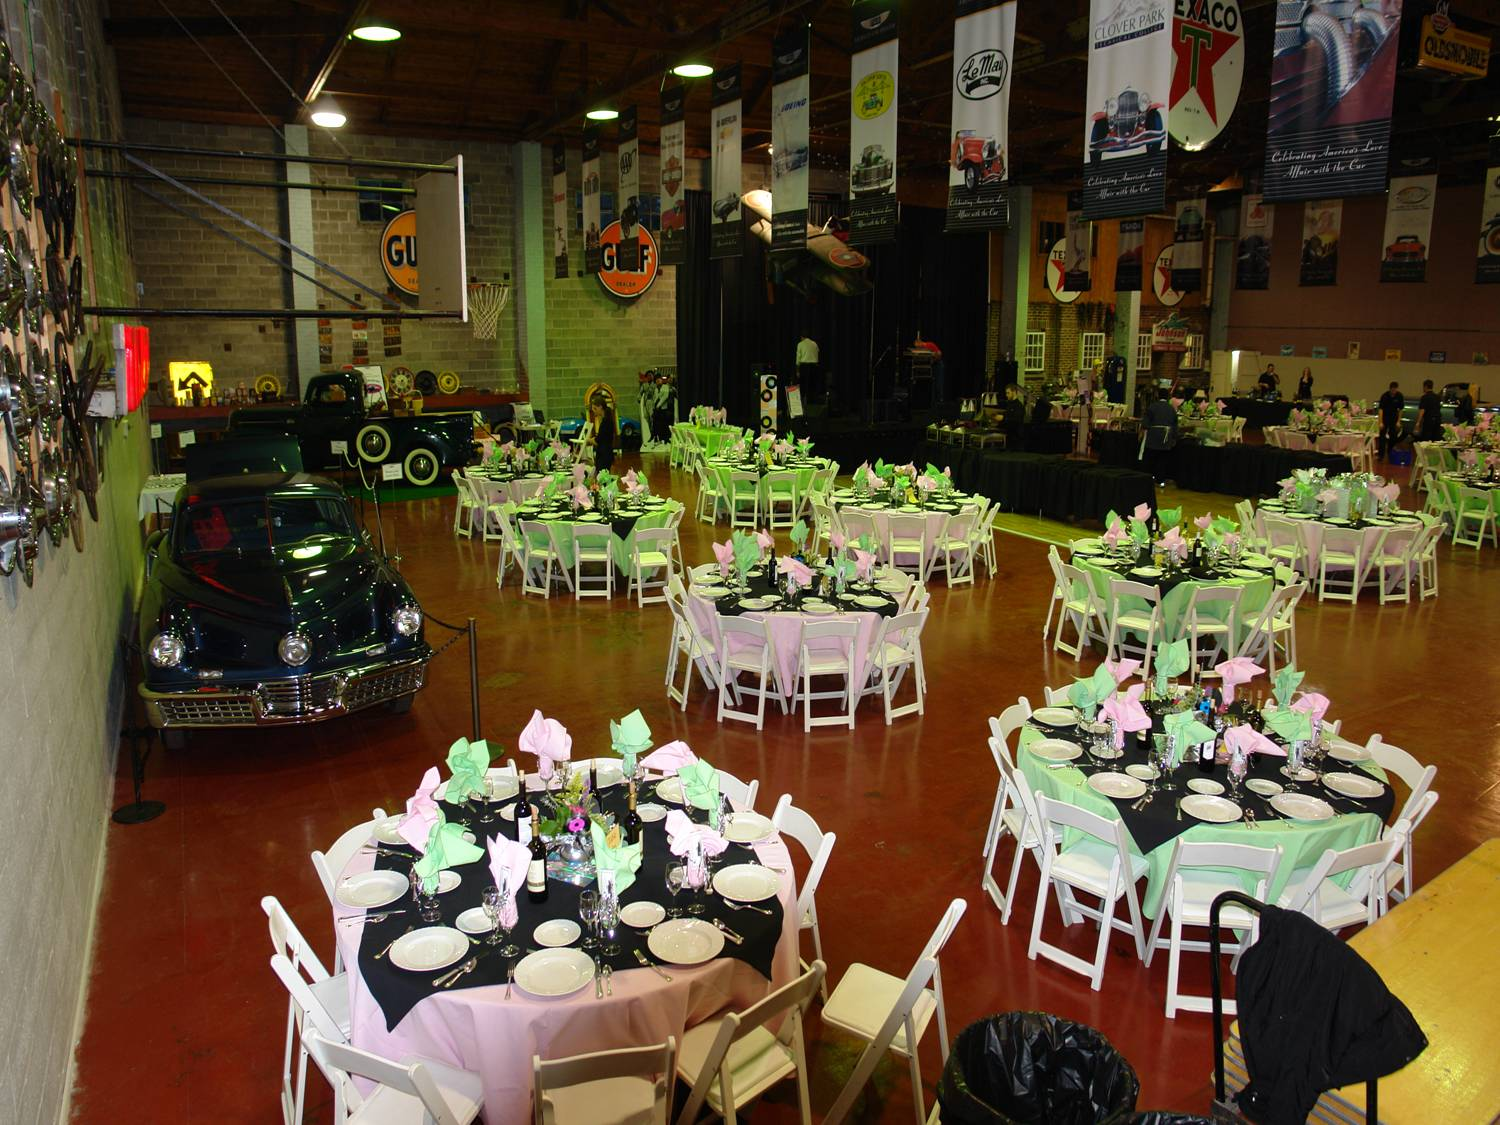 Preferred Caterer of LeMay - America\'s Car Museum - Gallucci\'s Catering